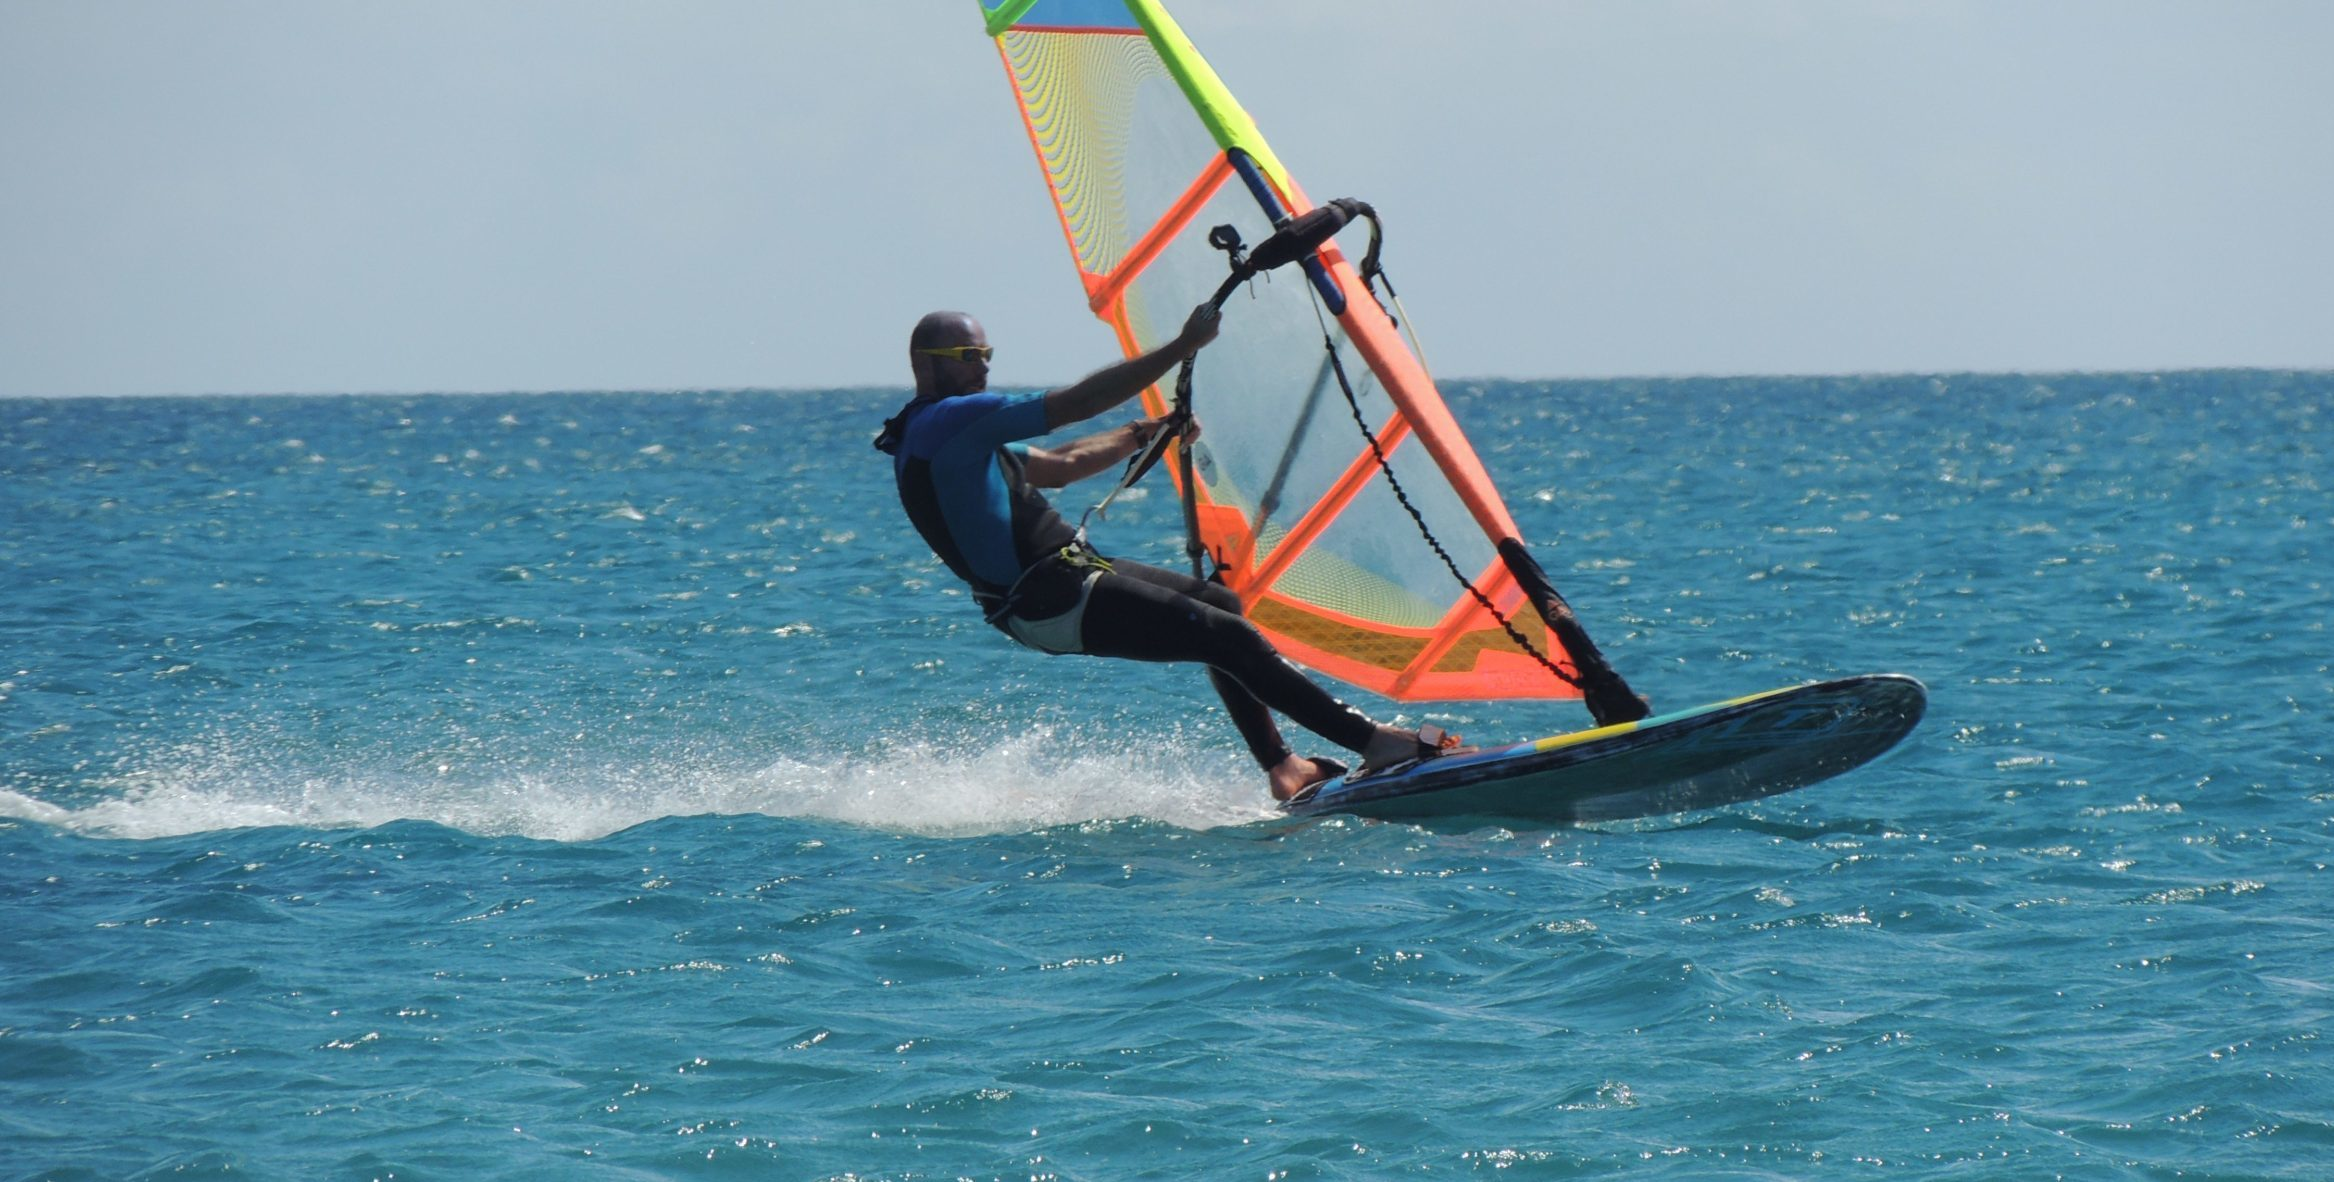 Windsurf Sardinia - Windsurf Sardinia Center